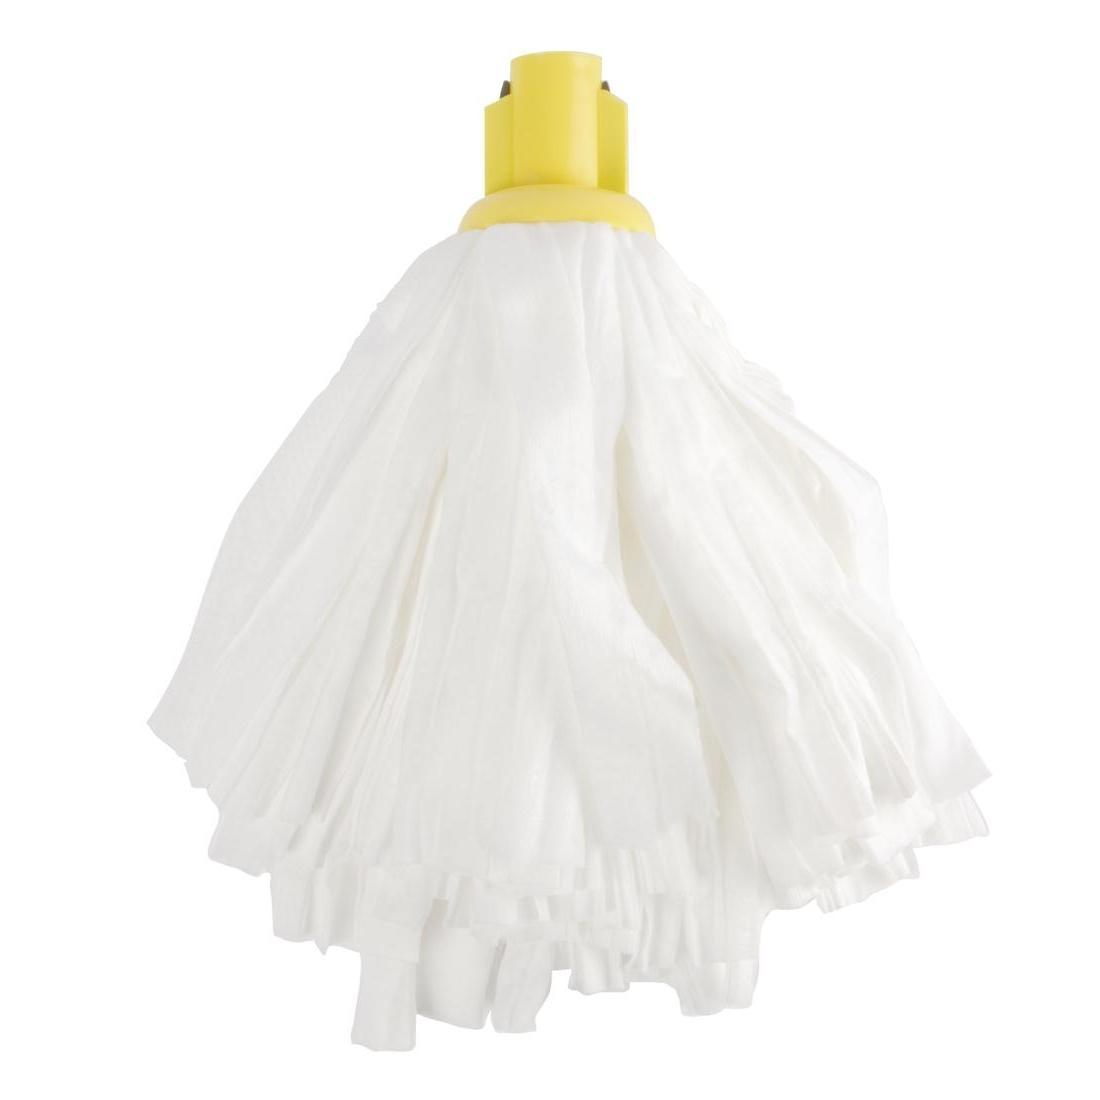 Jantex Standard Big White Socket Mop Head Yellow